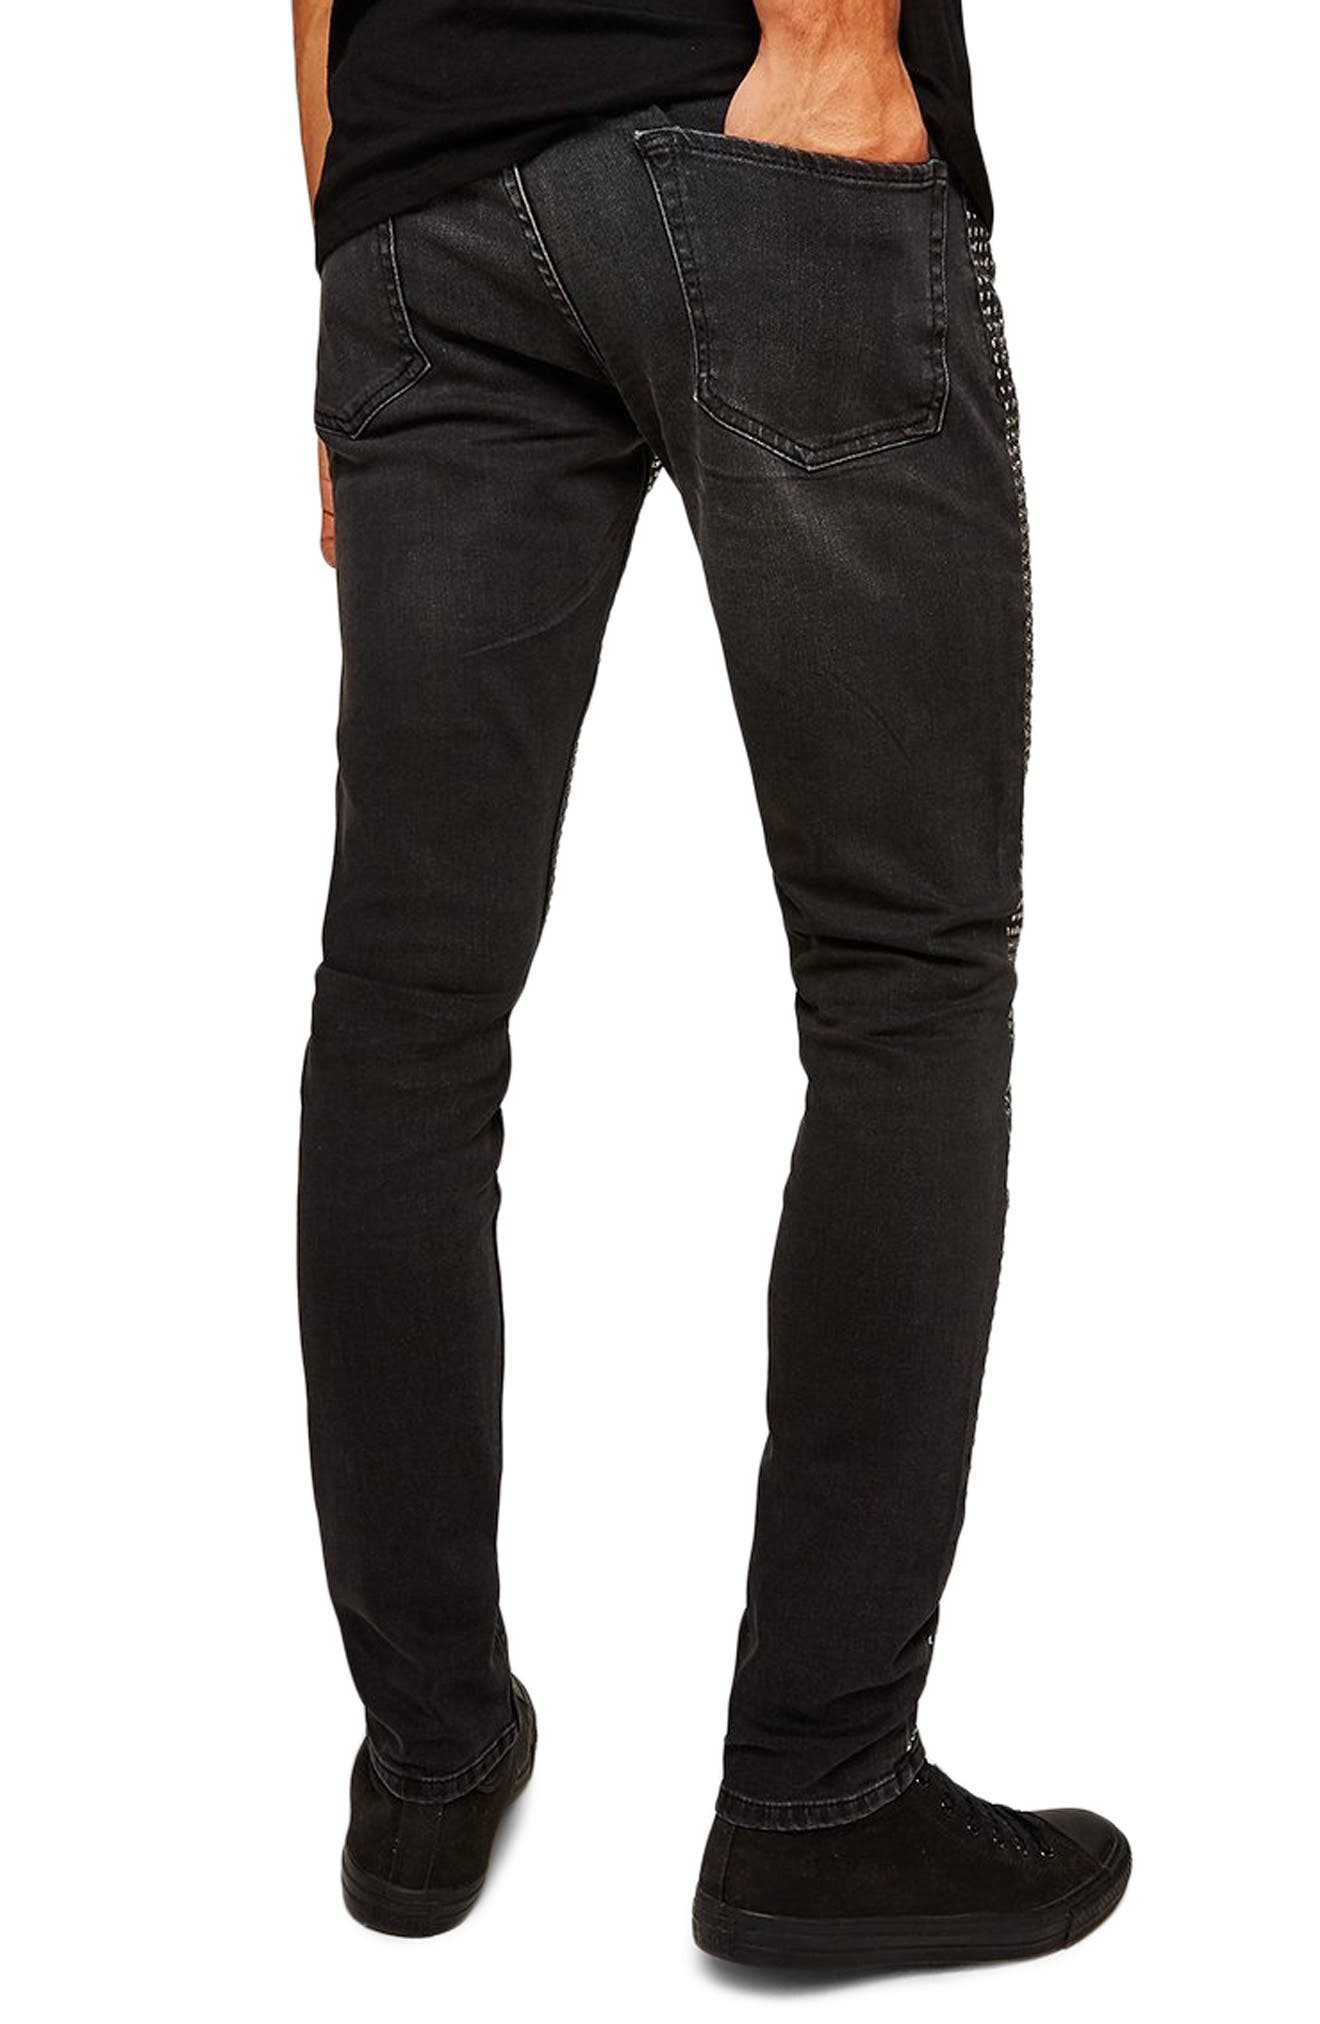 Ozzy Stud Stretch Skinny Jeans,                             Alternate thumbnail 2, color,                             001